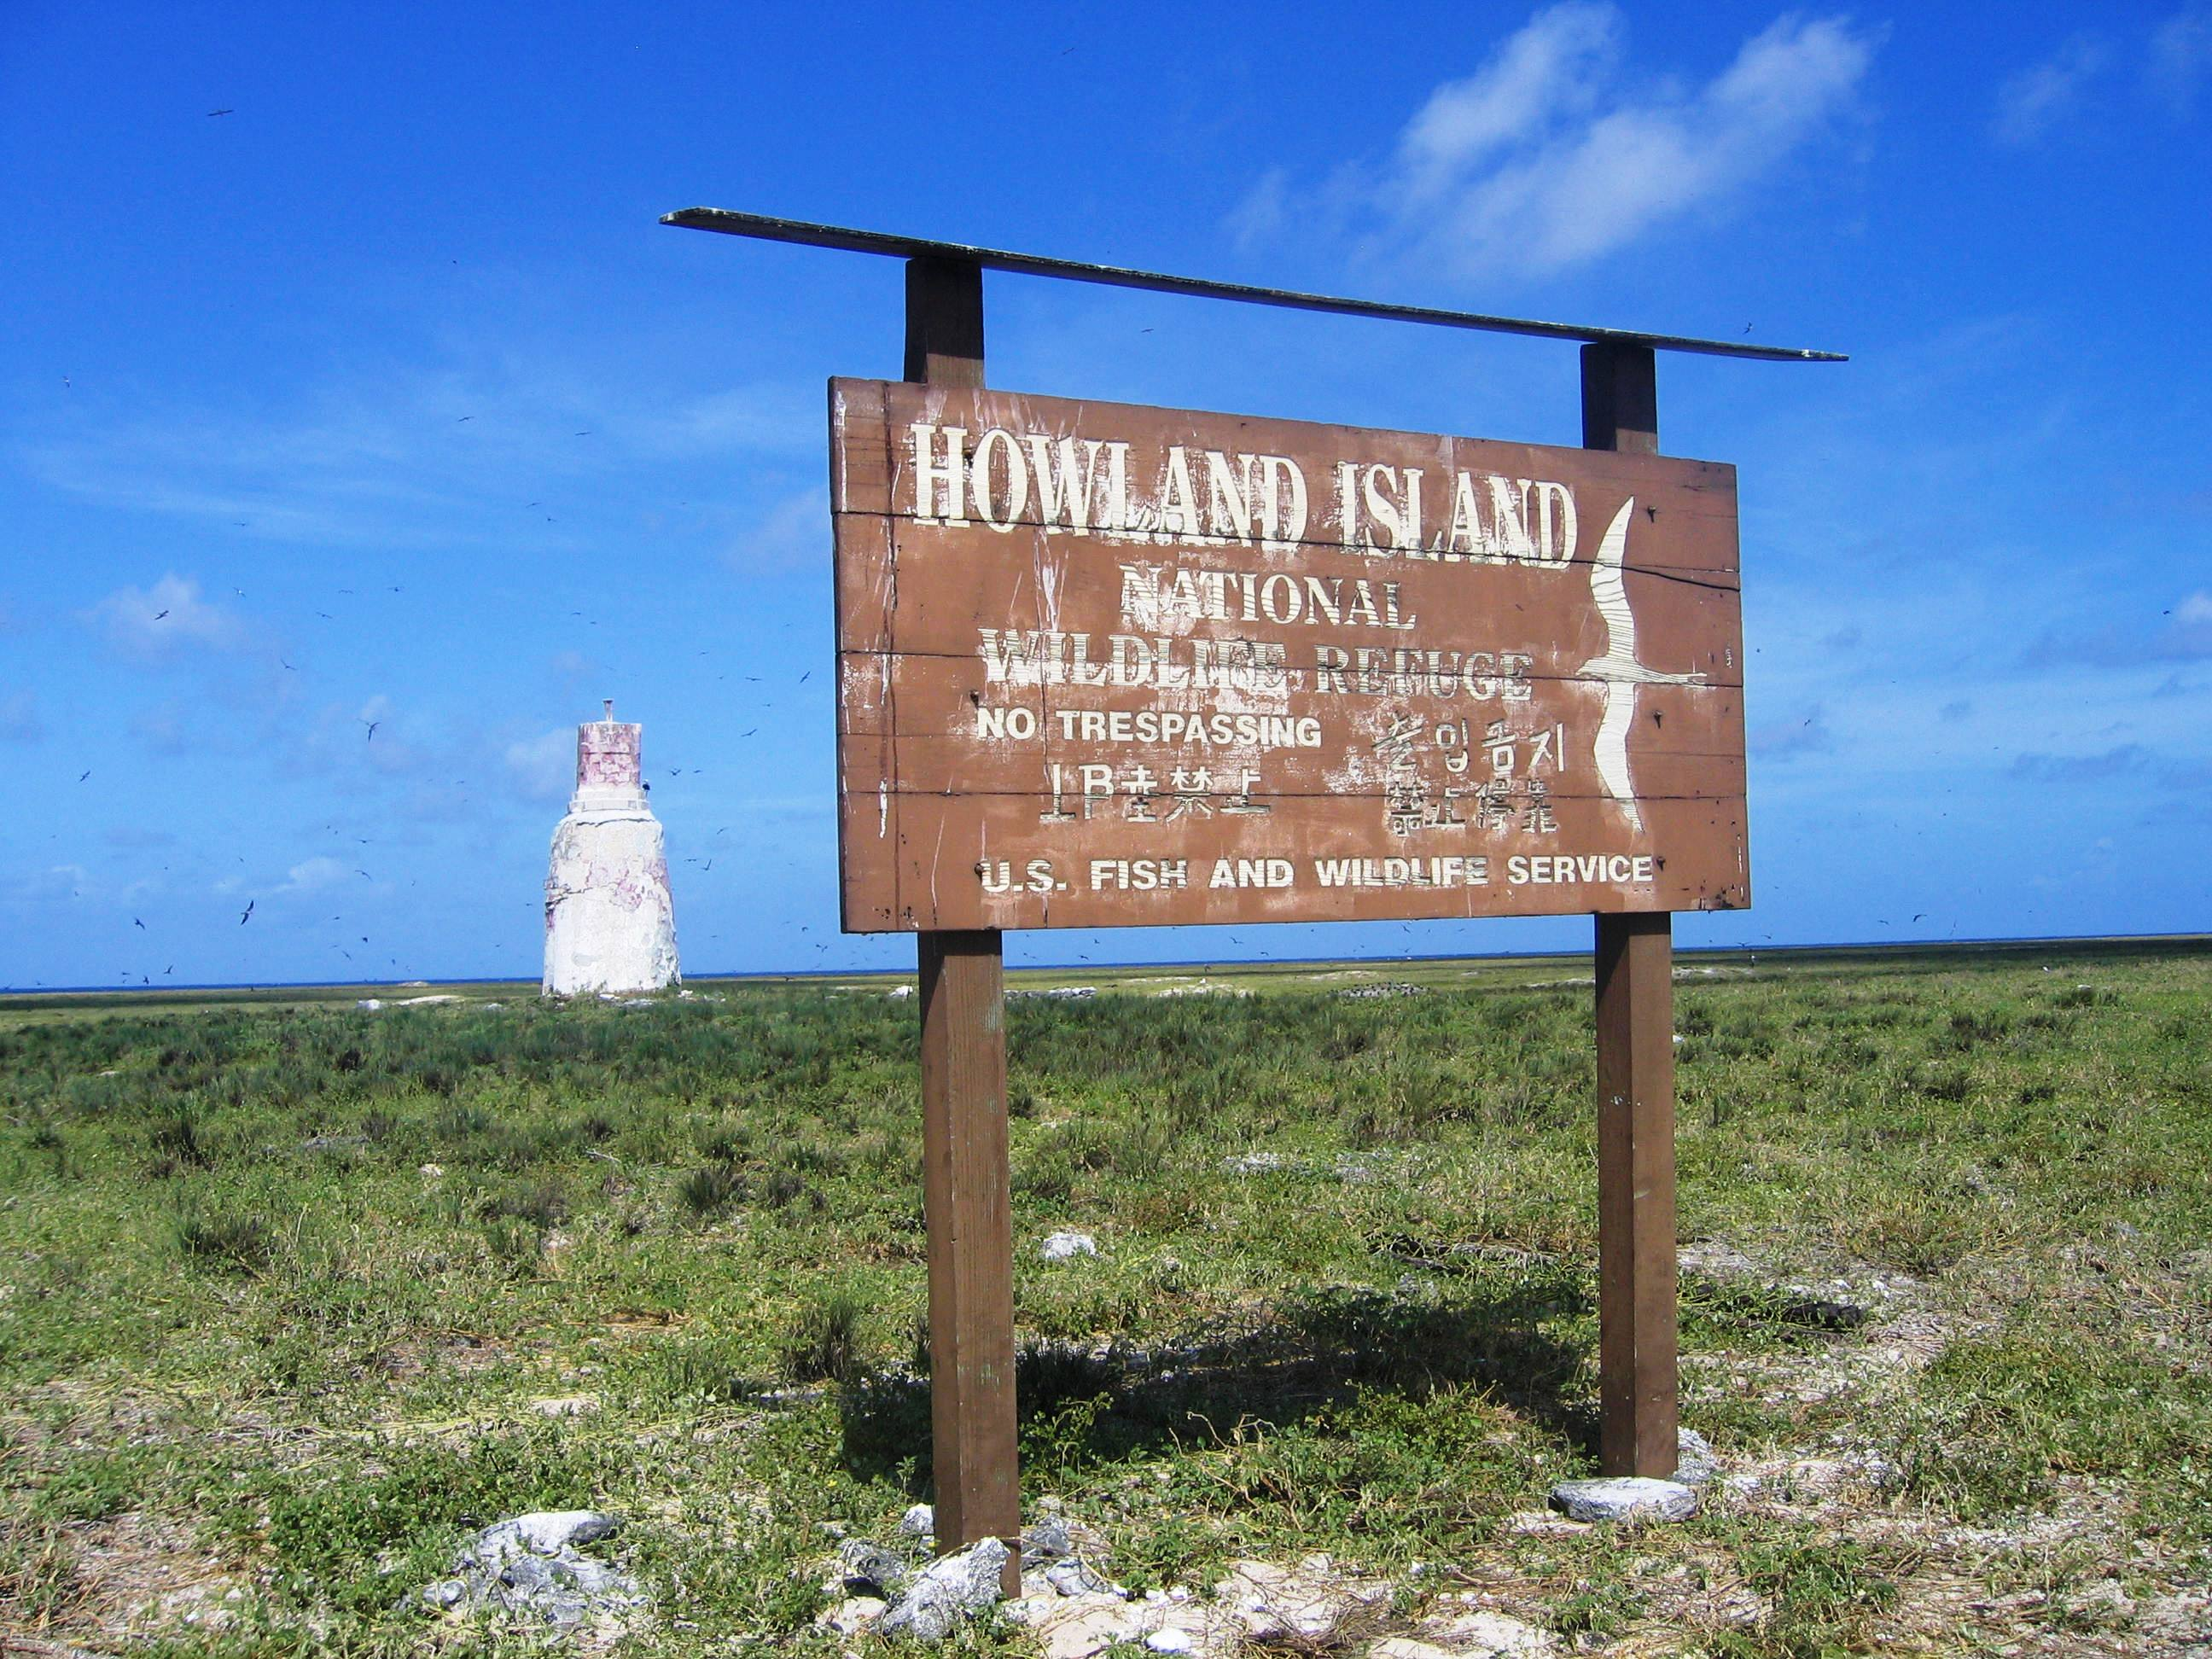 Sign of the Howland island